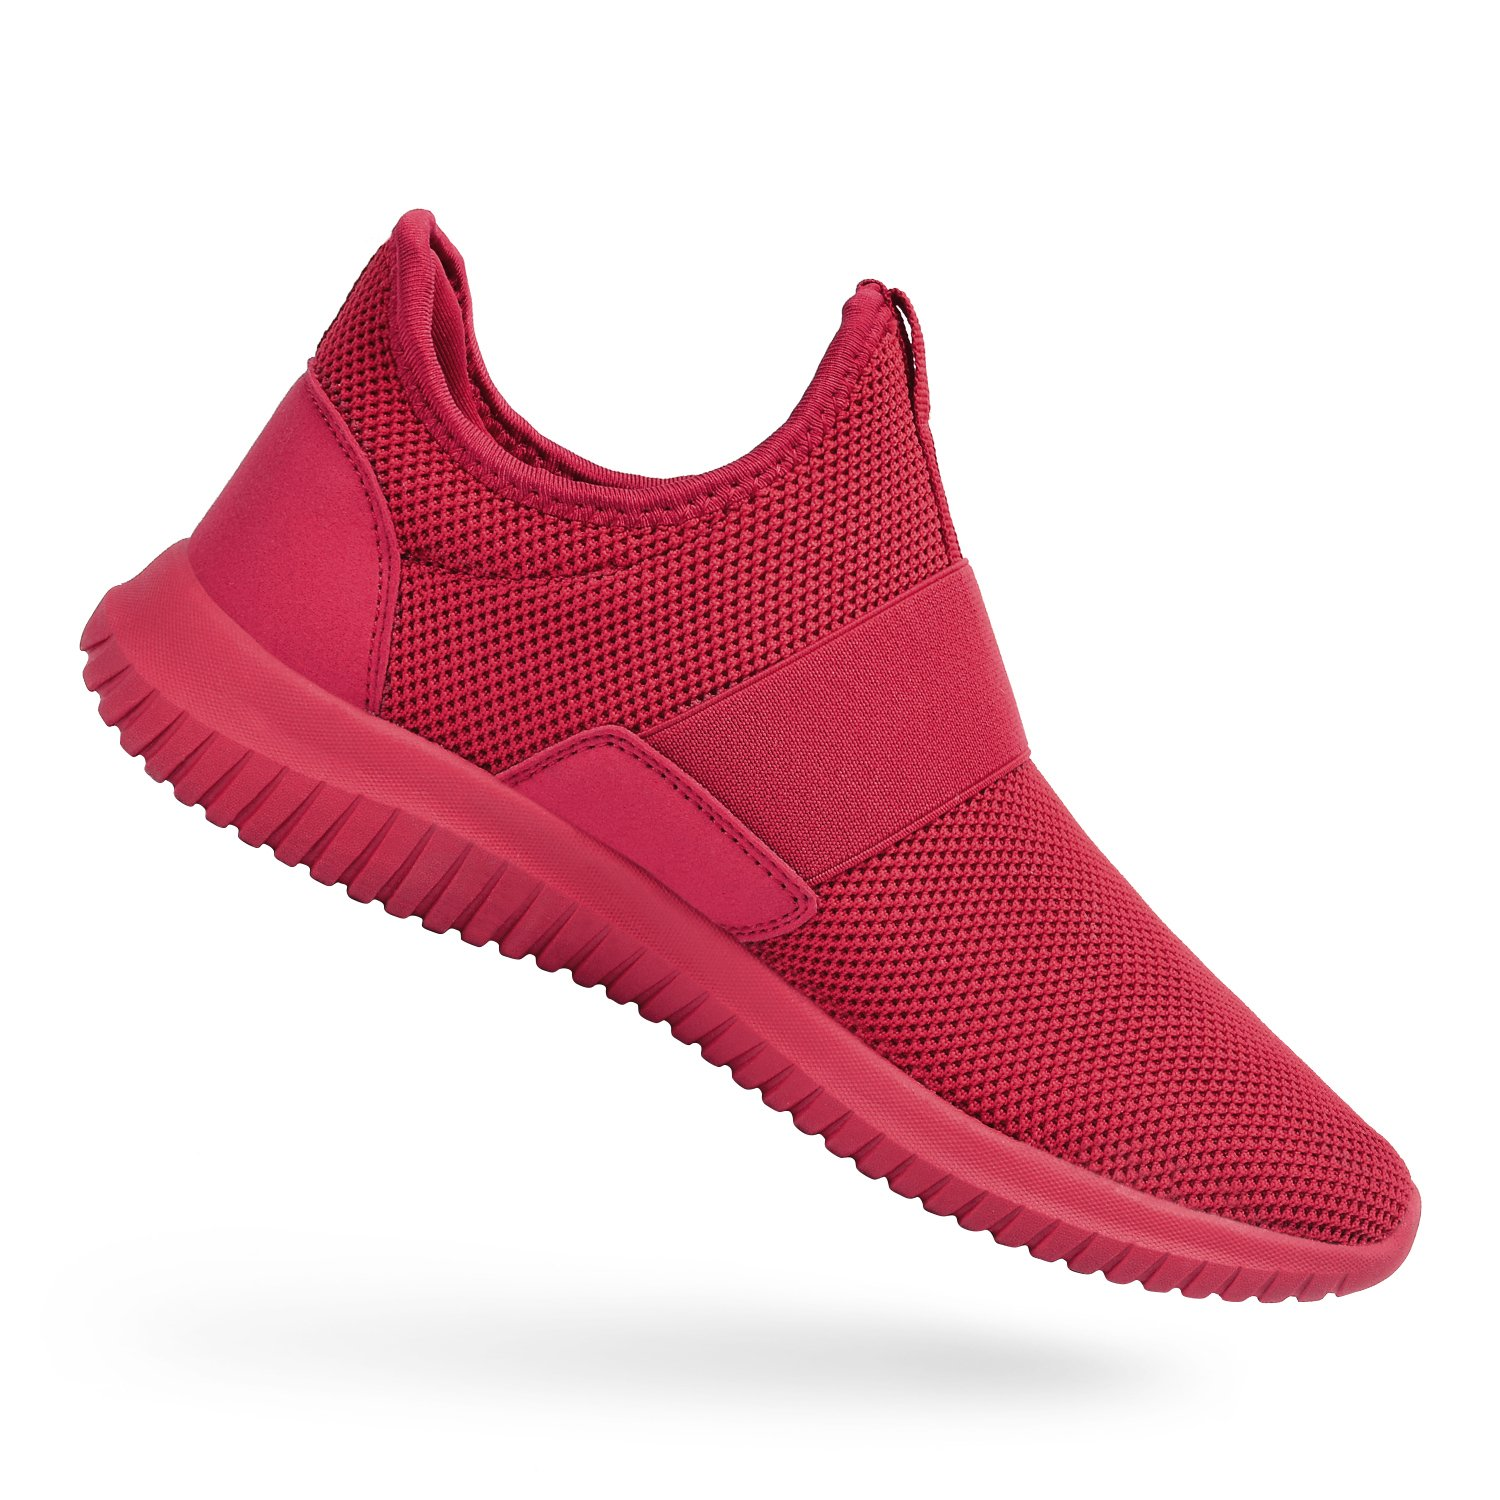 9308e1f4f8eb0b Galleon - Feetmat Shoes For Men Knit Mesh Athletic Shoes For Boy Red 8.5